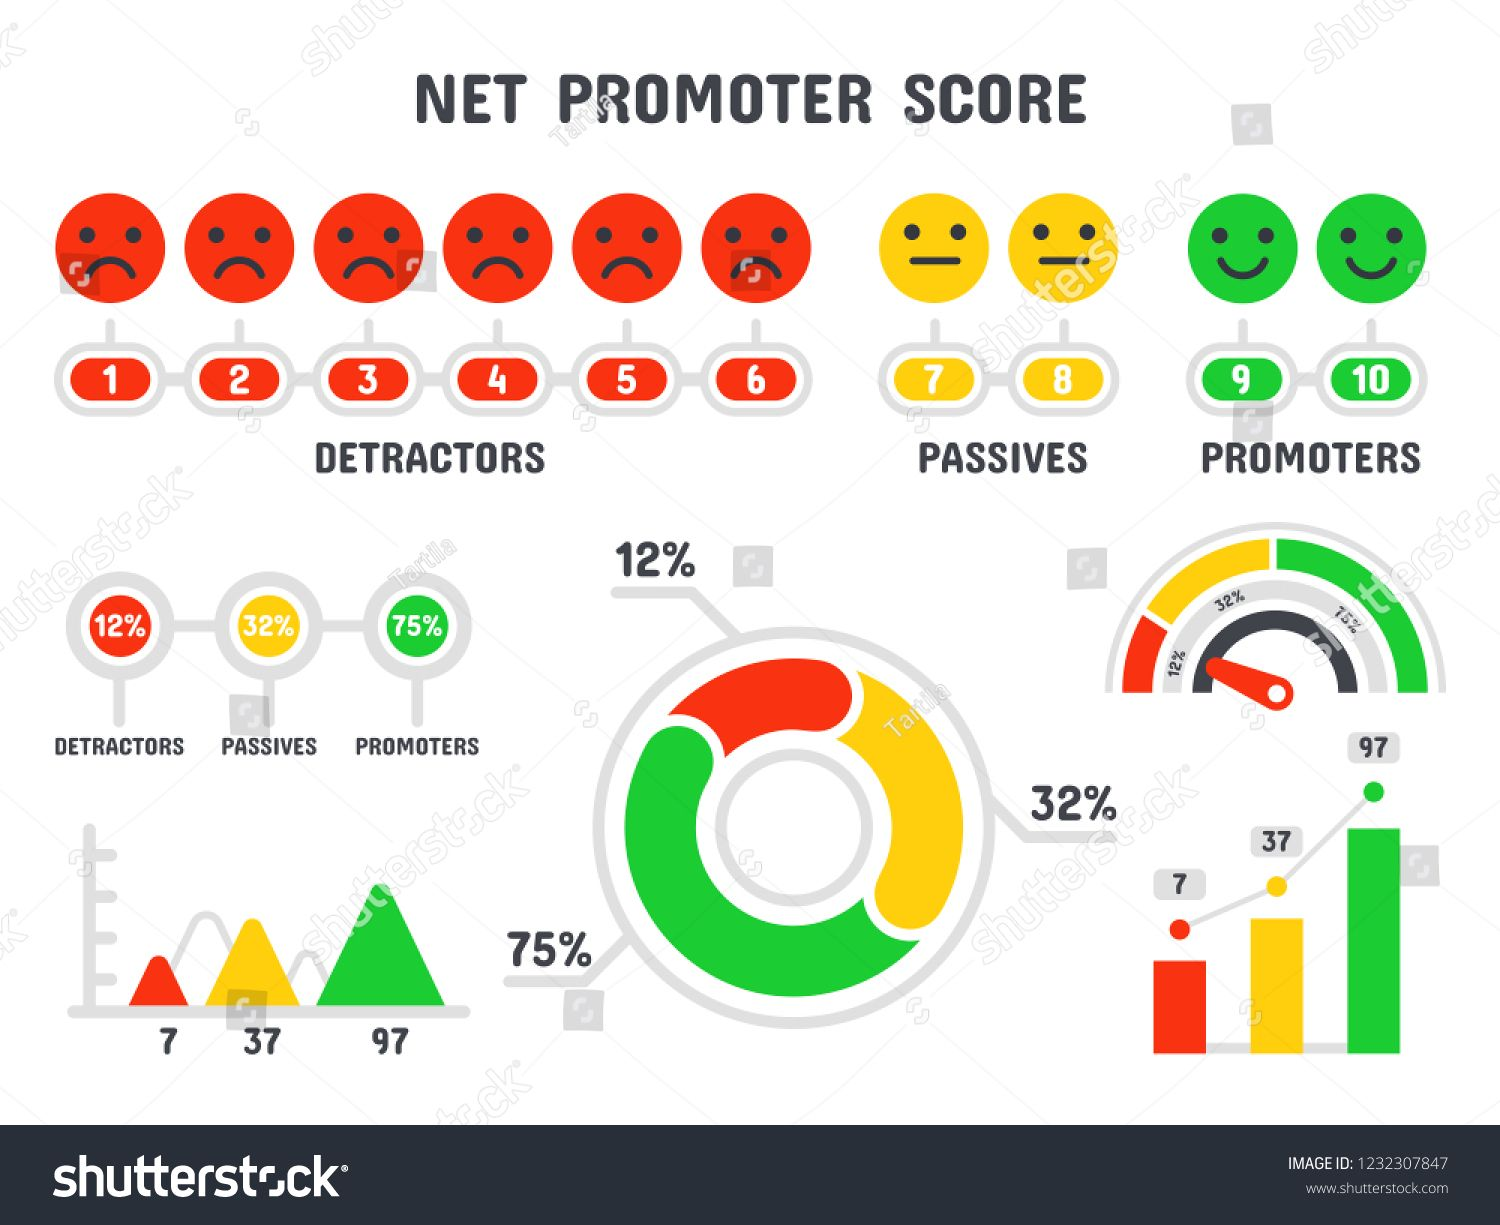 Net Promoter Score Formula Nps Scale Promotion Marketing Scoring And Promotional Netting Teamwork Infographic Tot Text Balloon Text Bubble Powerpoint Charts